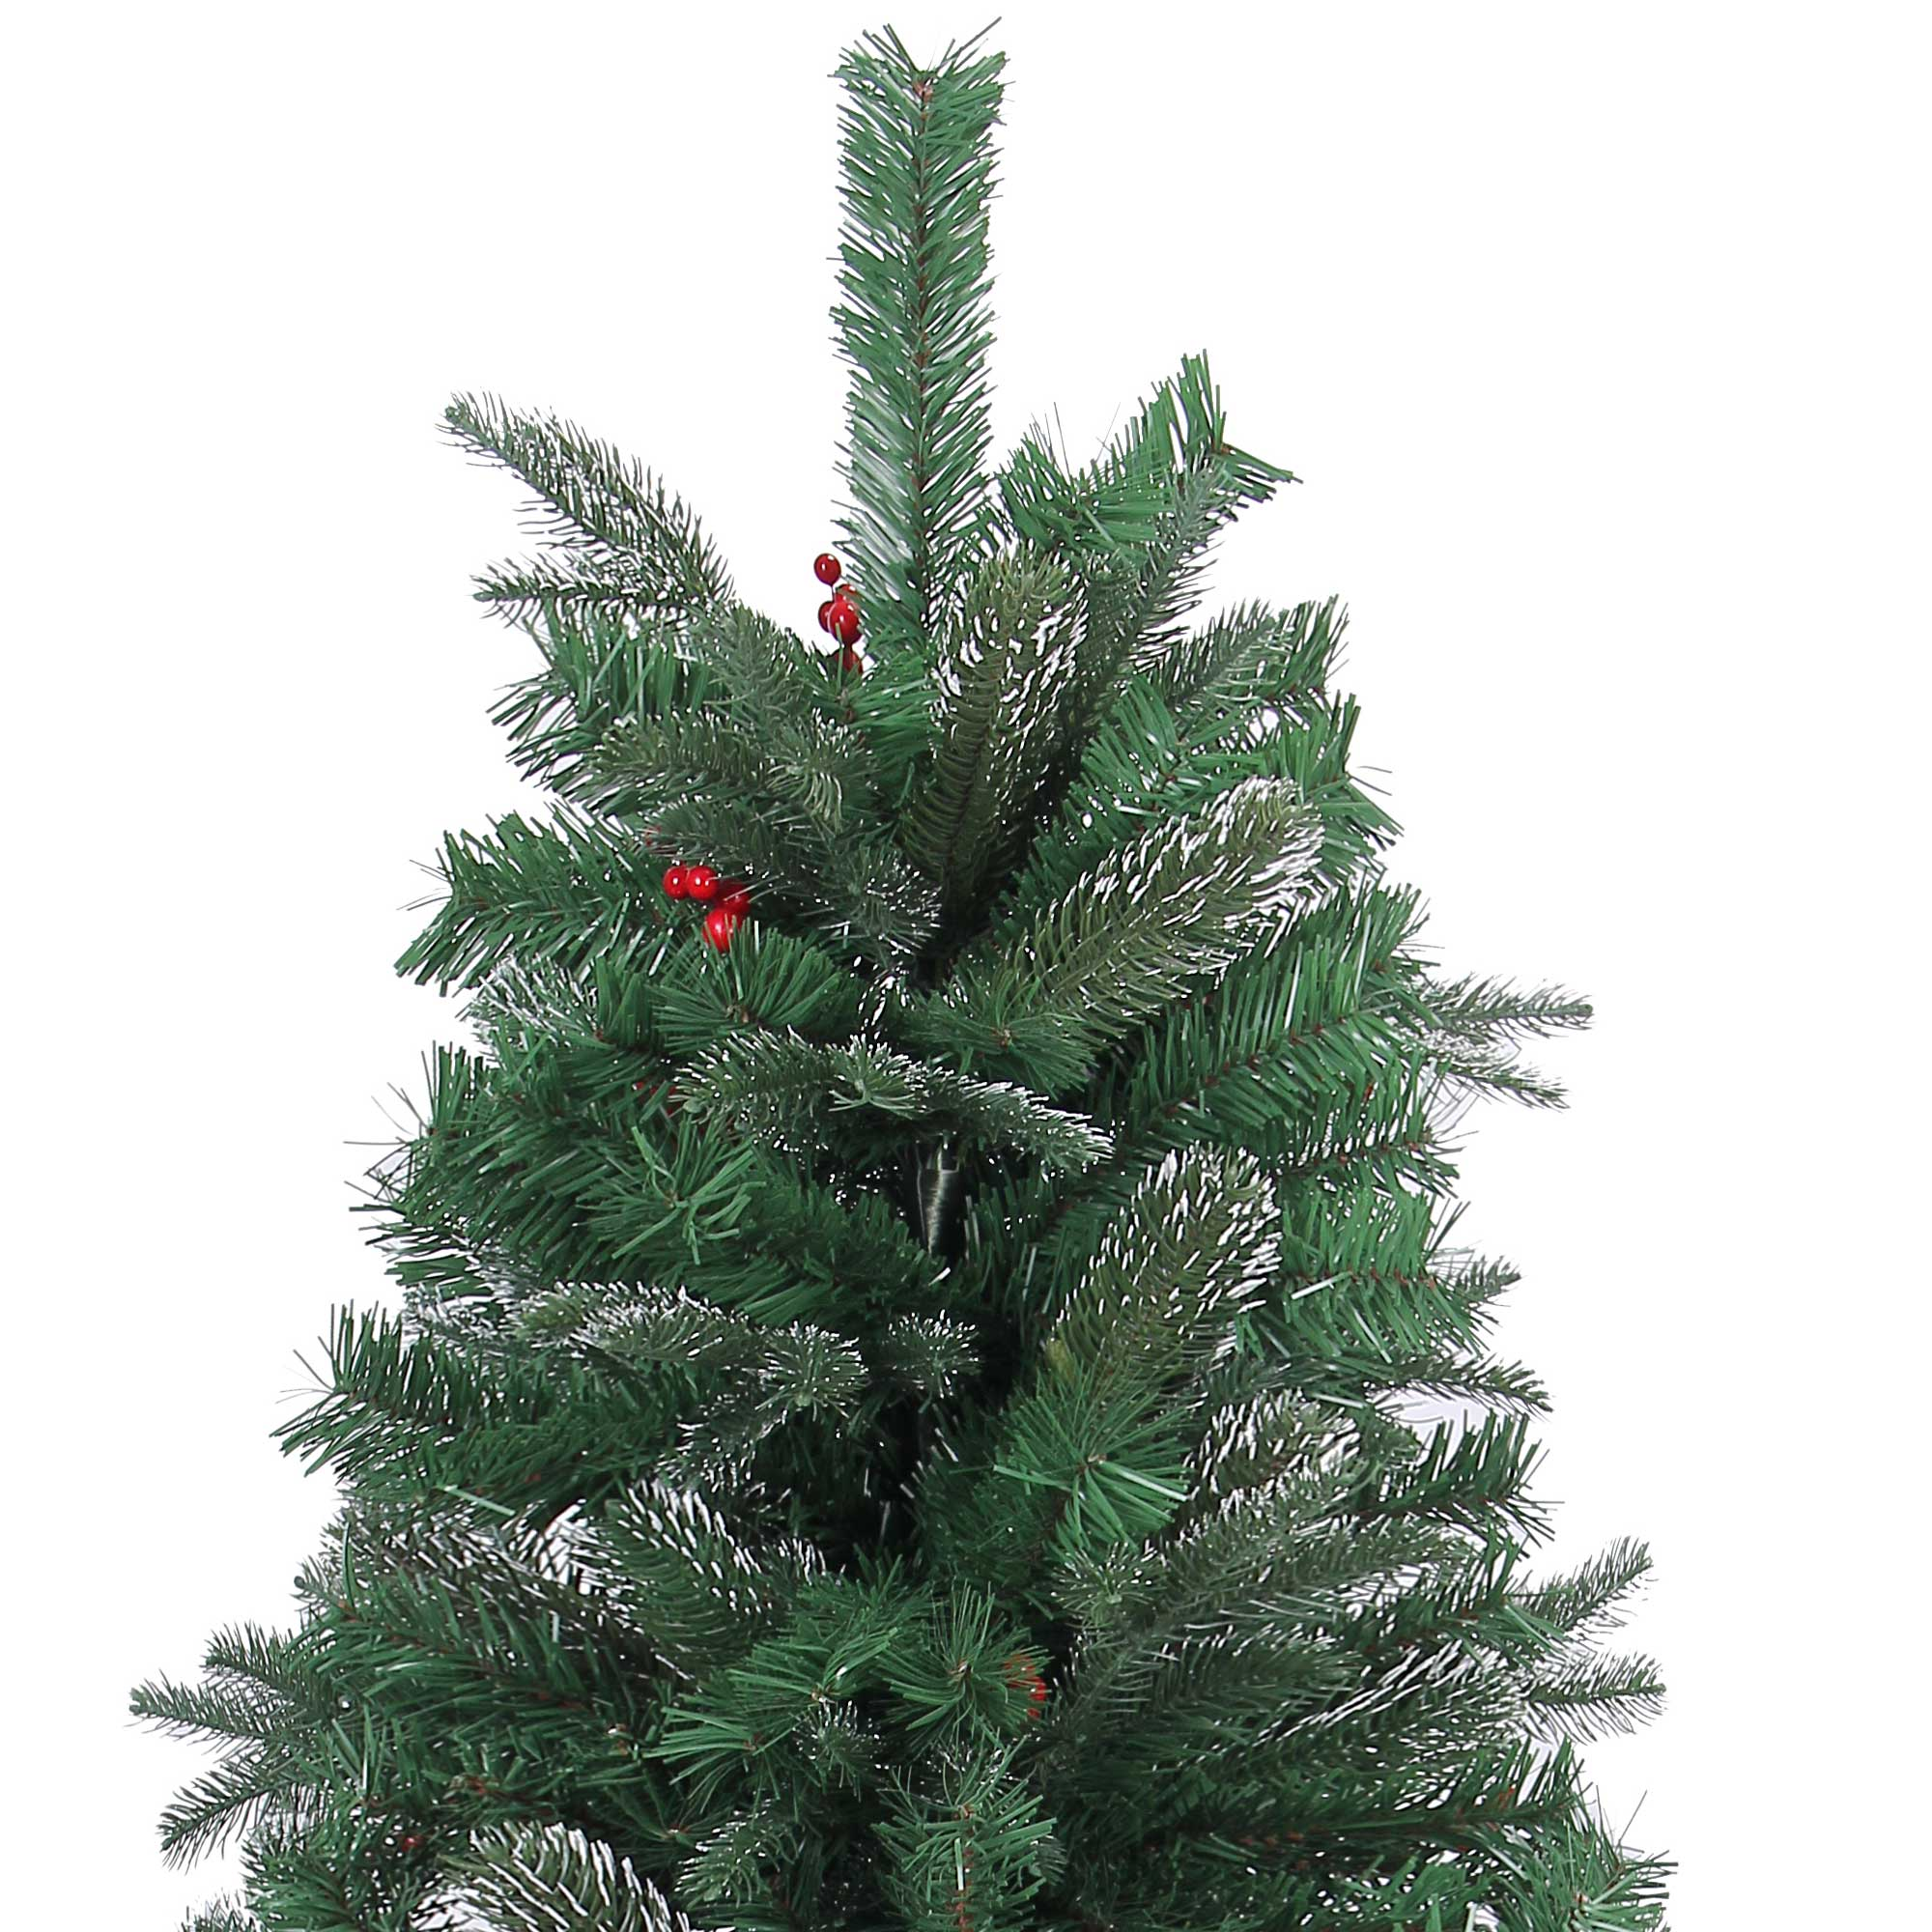 Red Red Pine Christmas Tree: Naturally Decorated Elegant Christmas Tree Frosted Tips